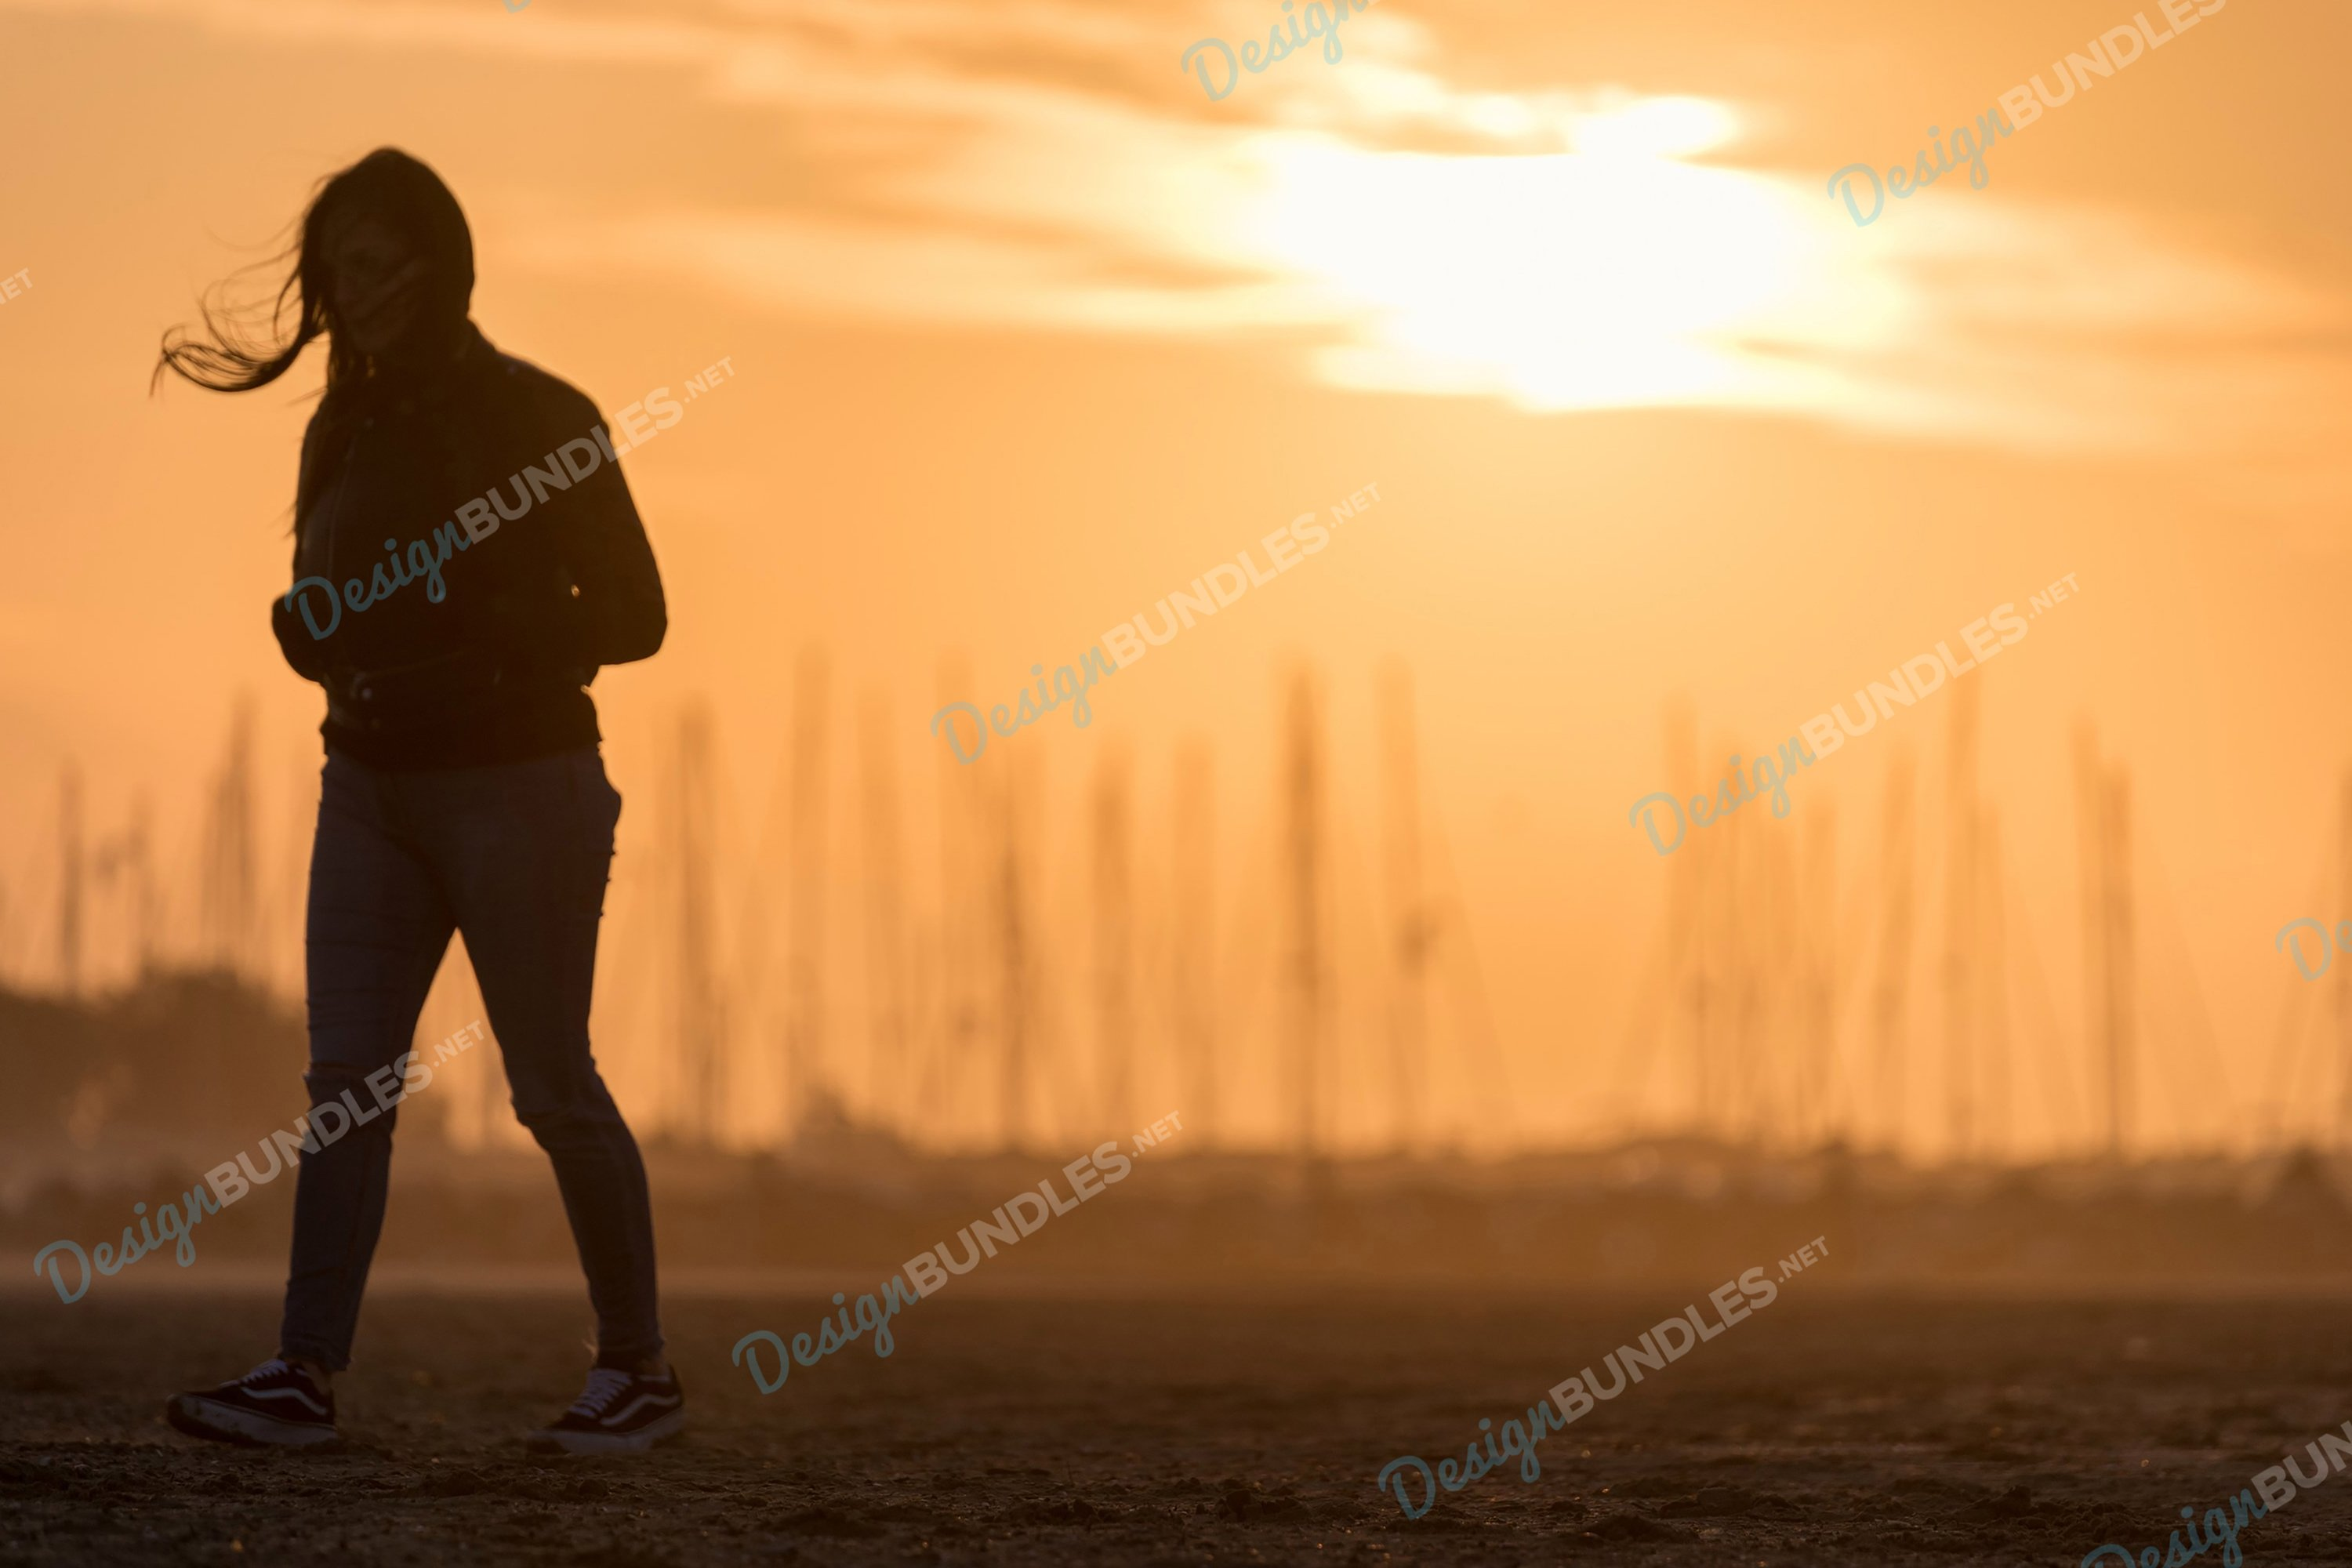 Stock Photo - Young Girl Running at Sunset example image 1